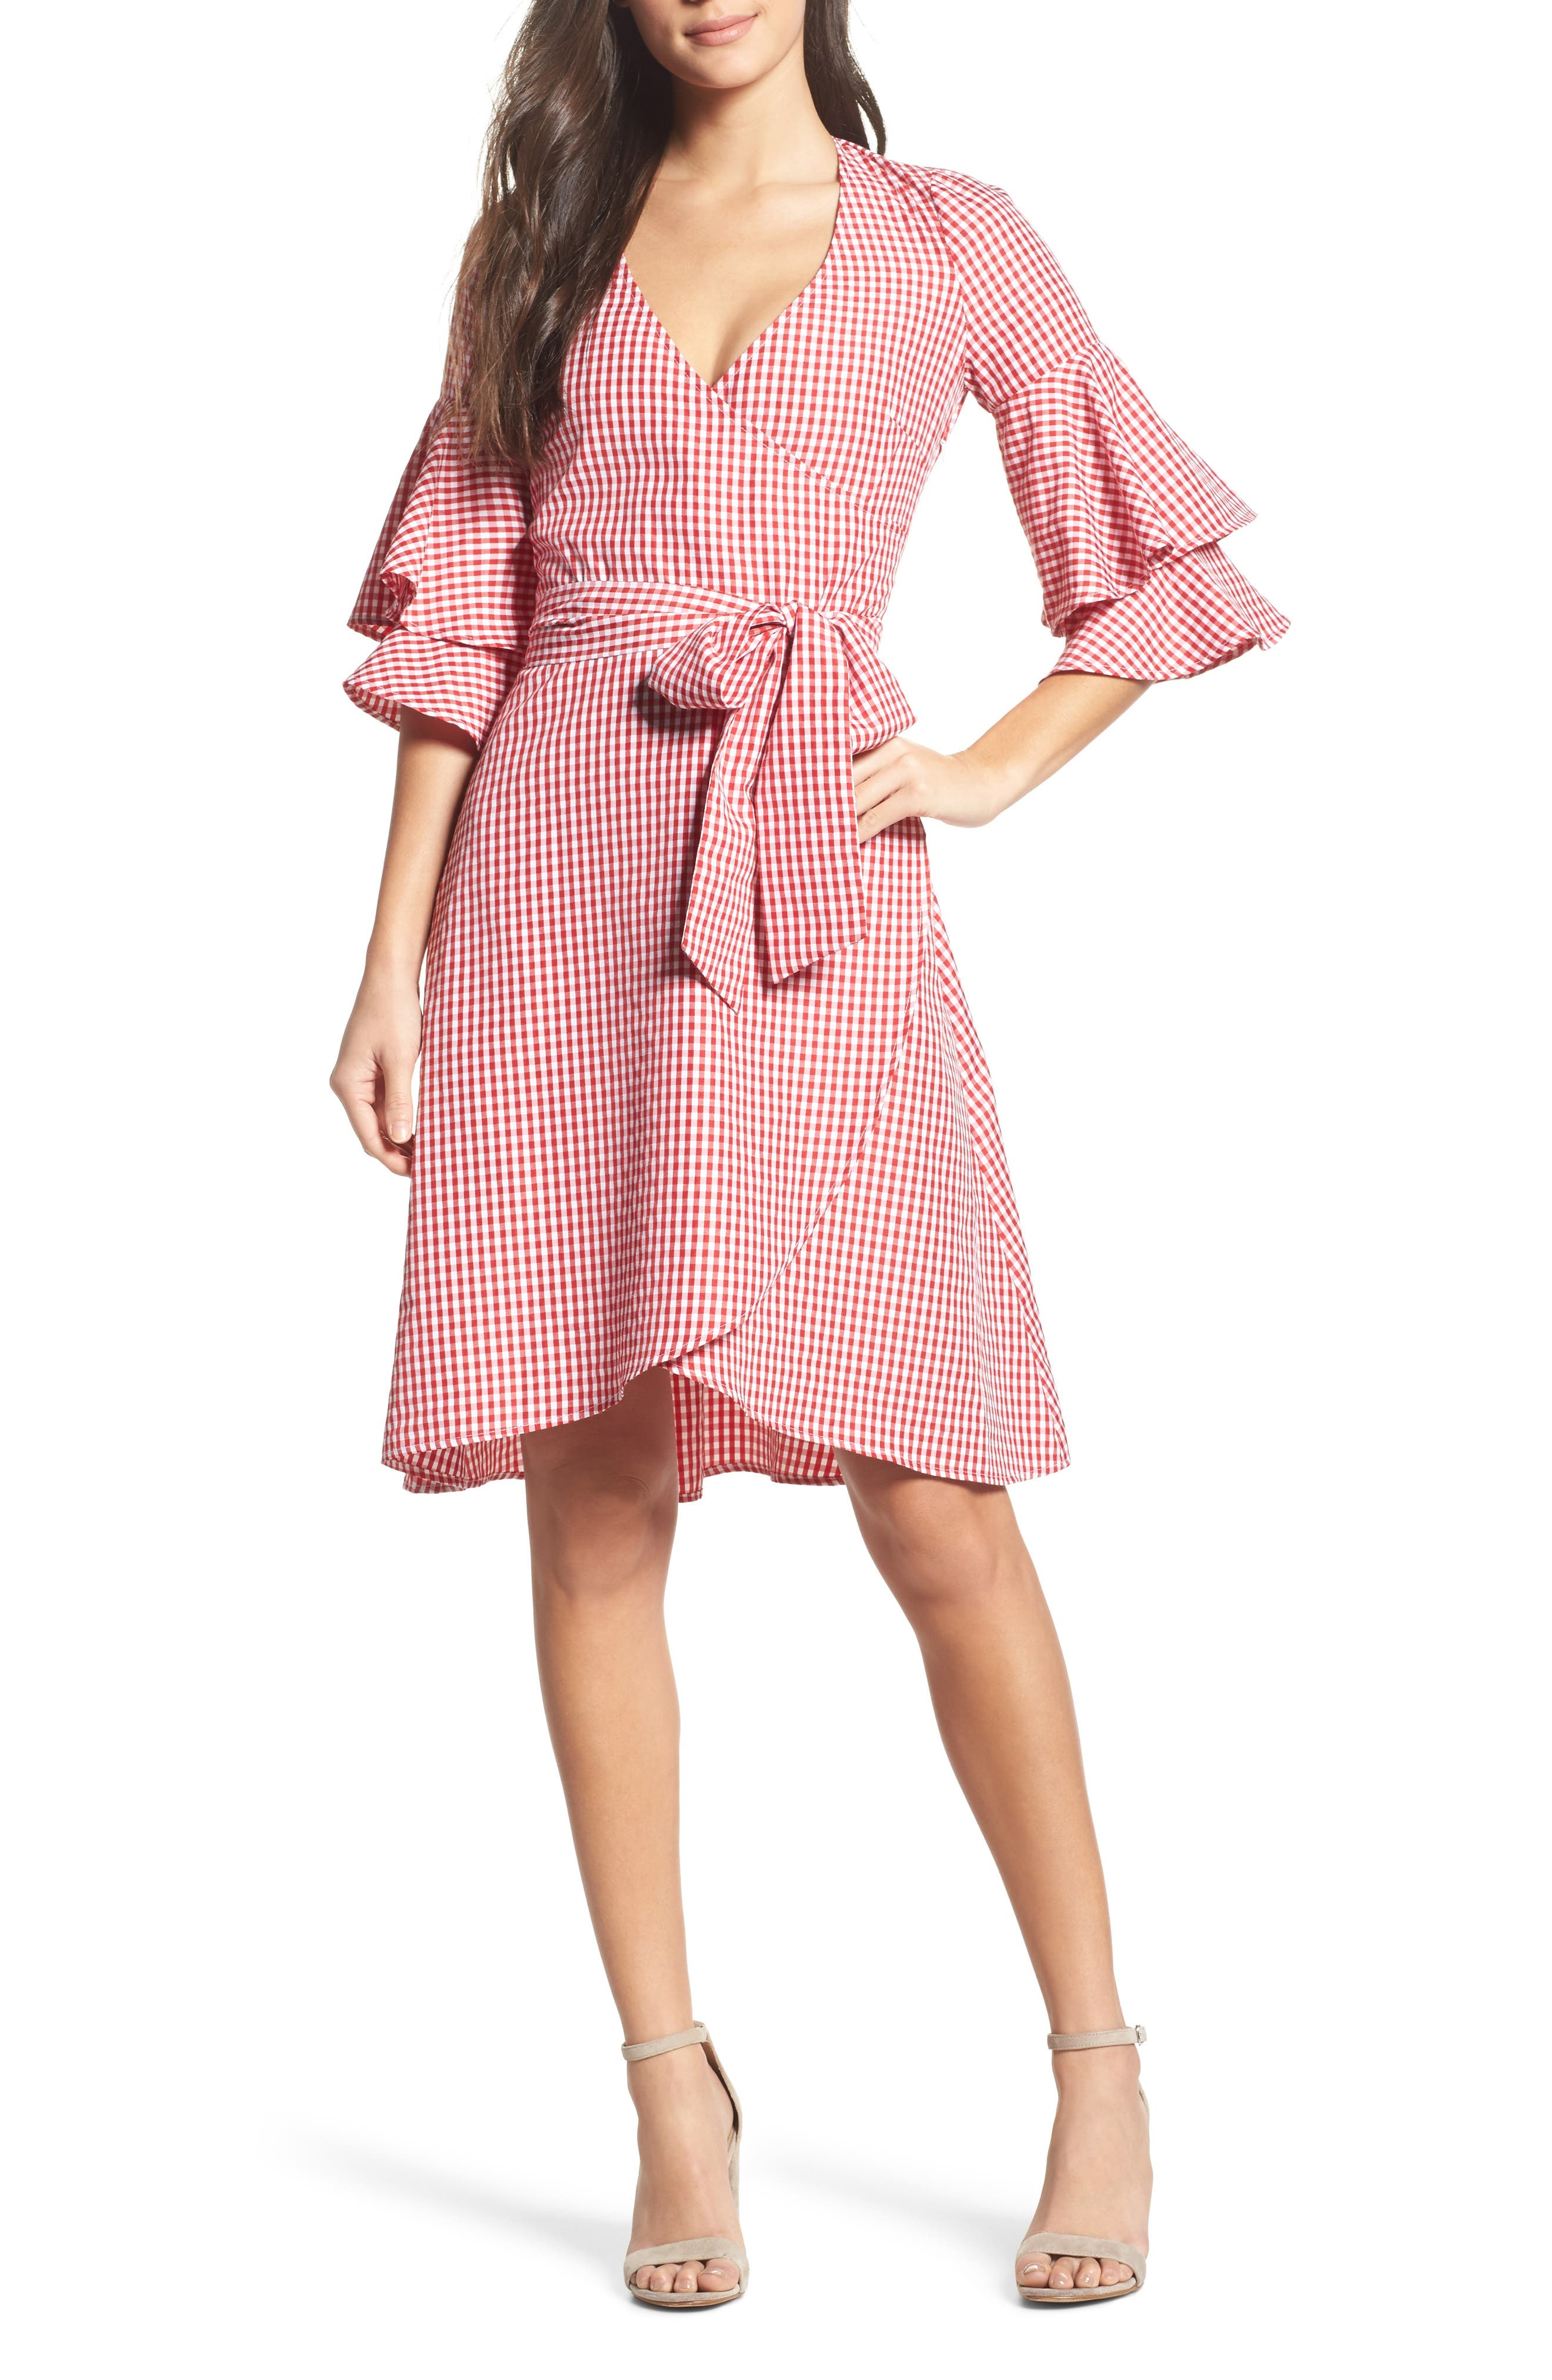 Ruffle Wrap Dress,                         Main,                         color, Red/ White Gingham